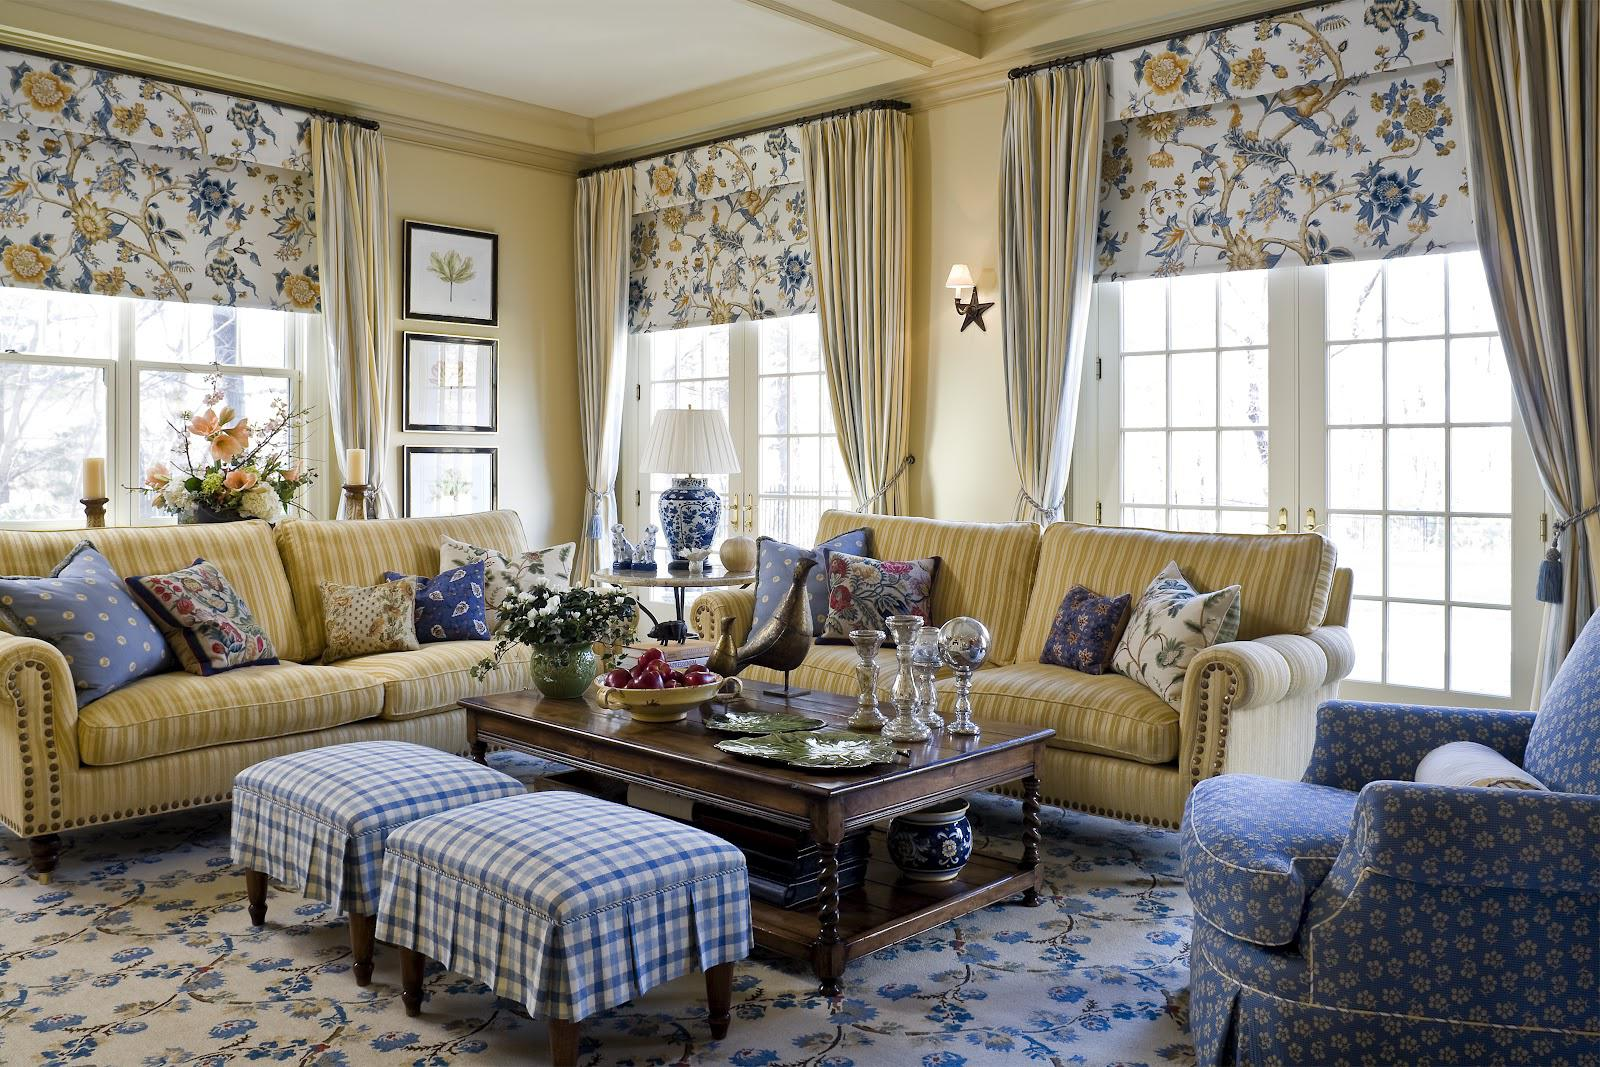 Image of: Country home interior Plans